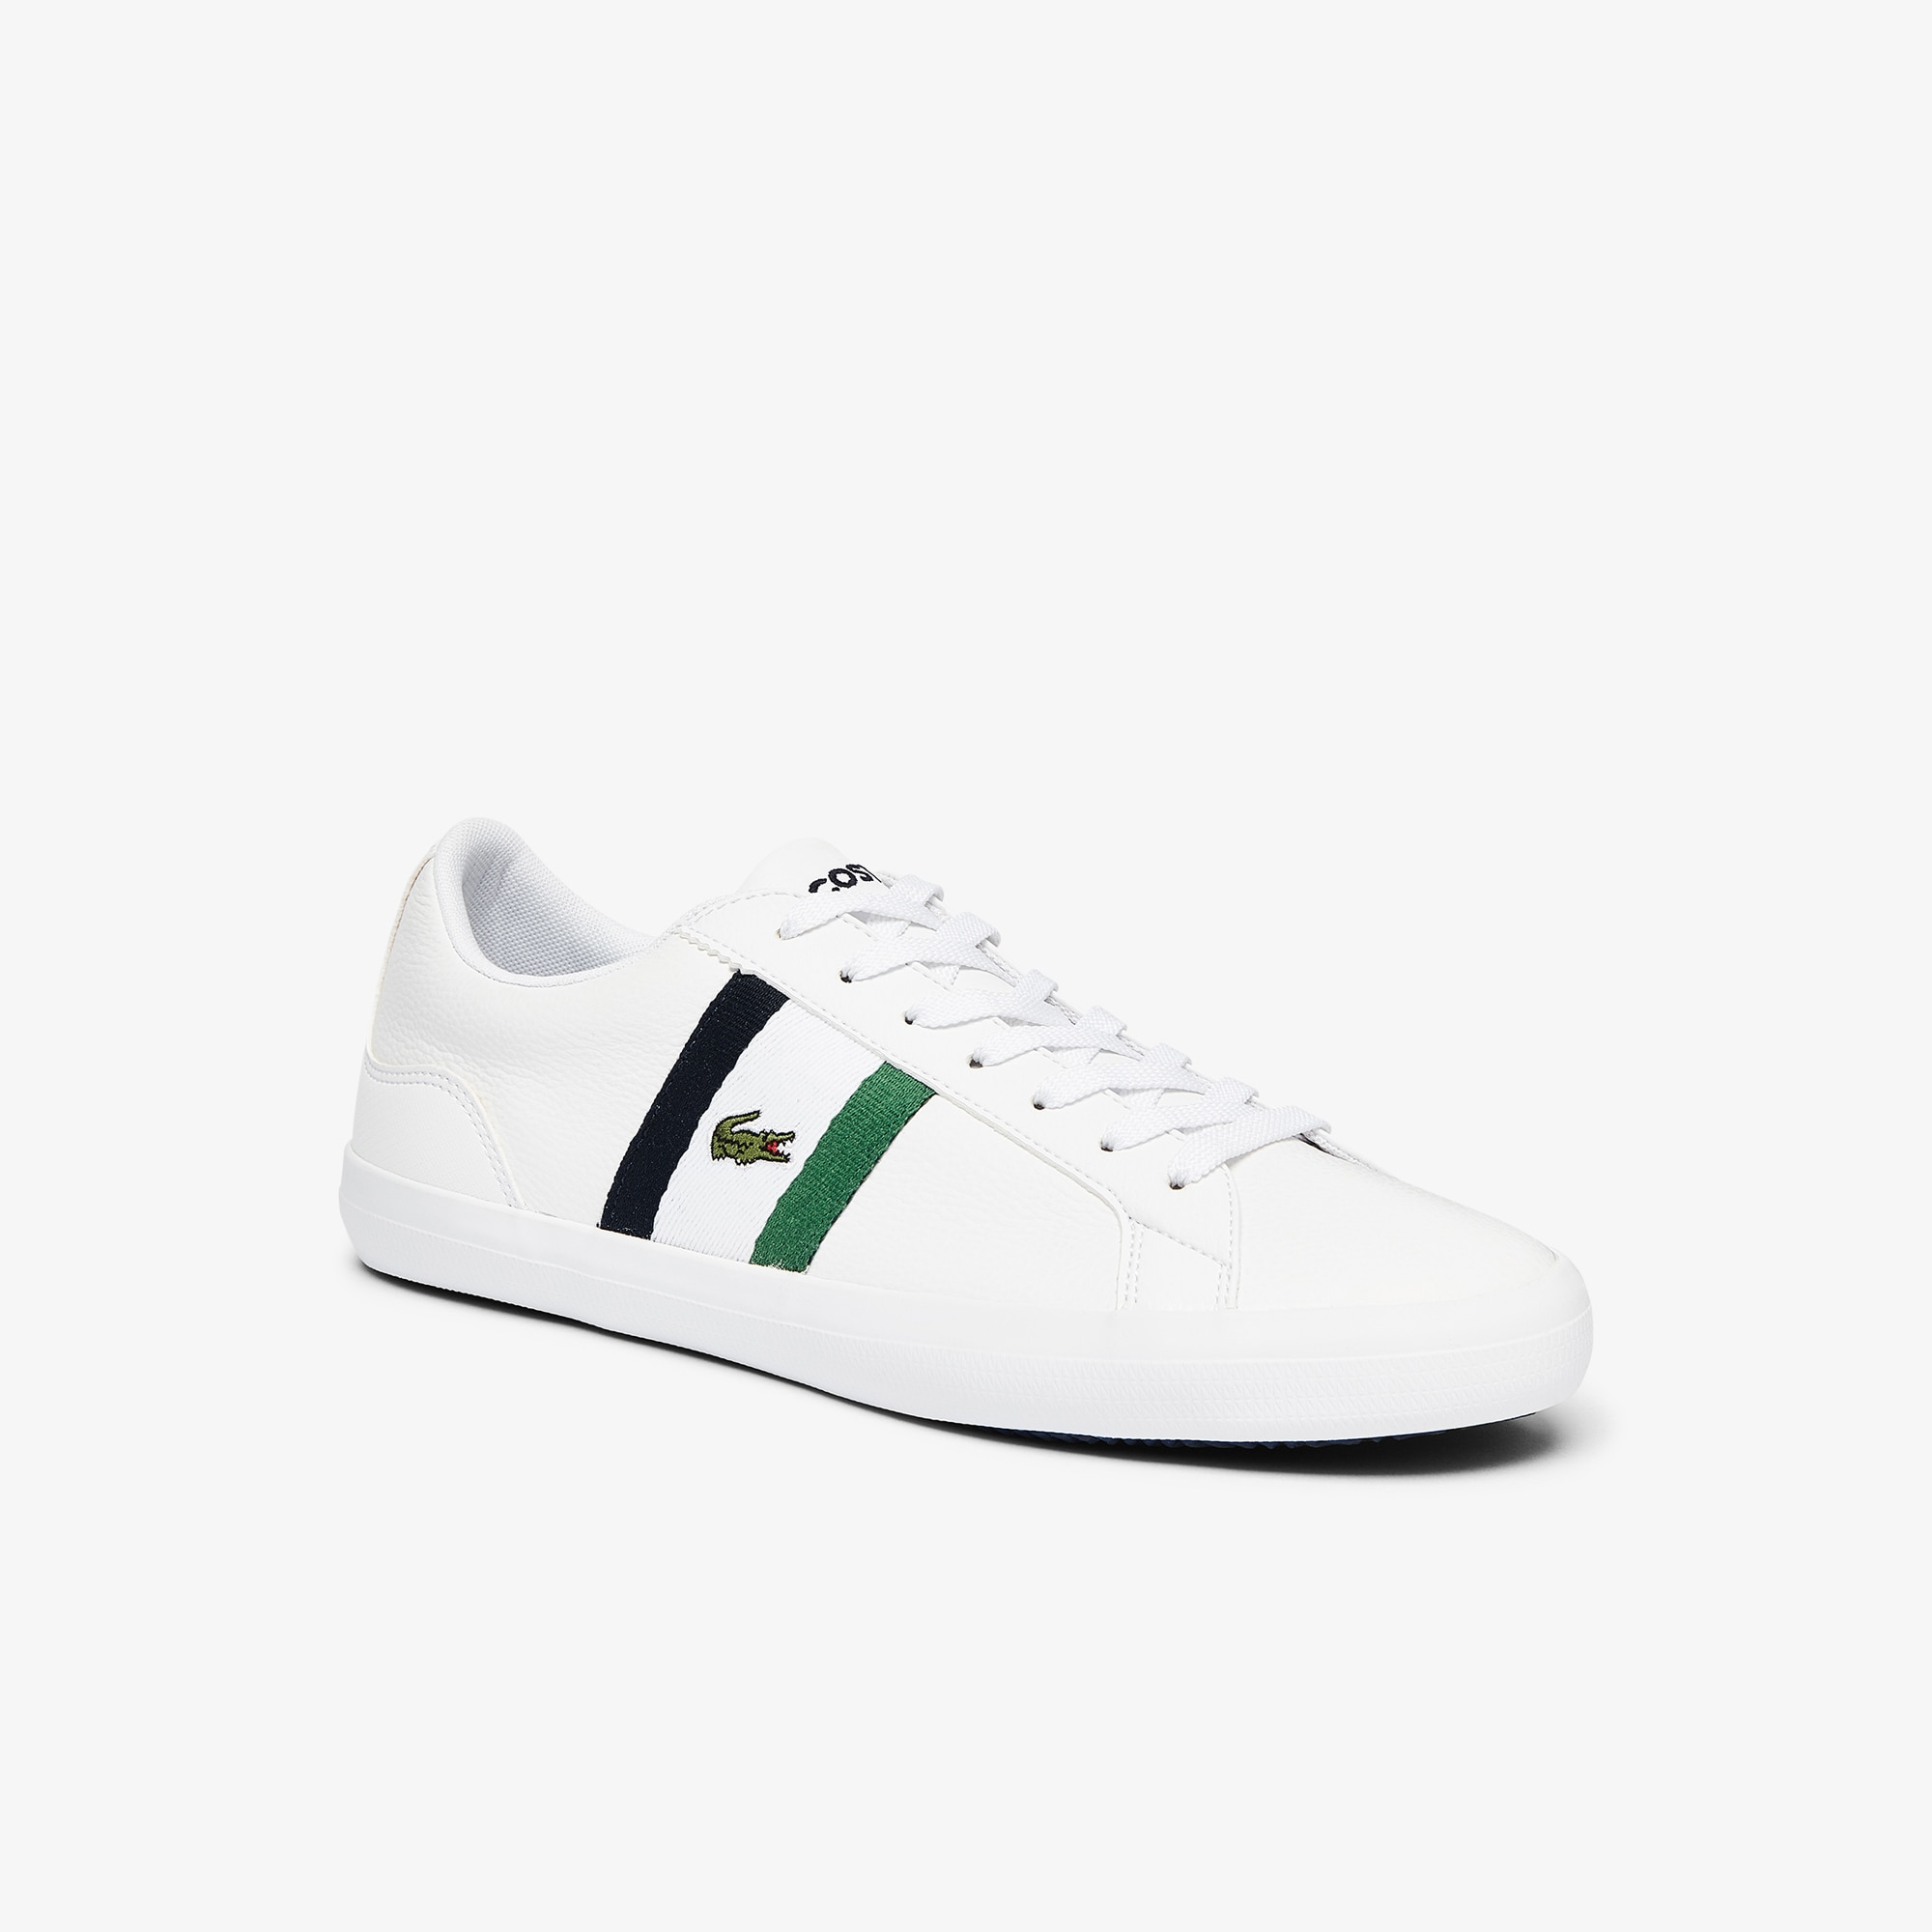 2715395711 Collection Homme Lacoste Chaussures Chaussures Homme Chaussures Collection  Homme Collection Lacoste Lacoste Chaussures Homme BHqxS